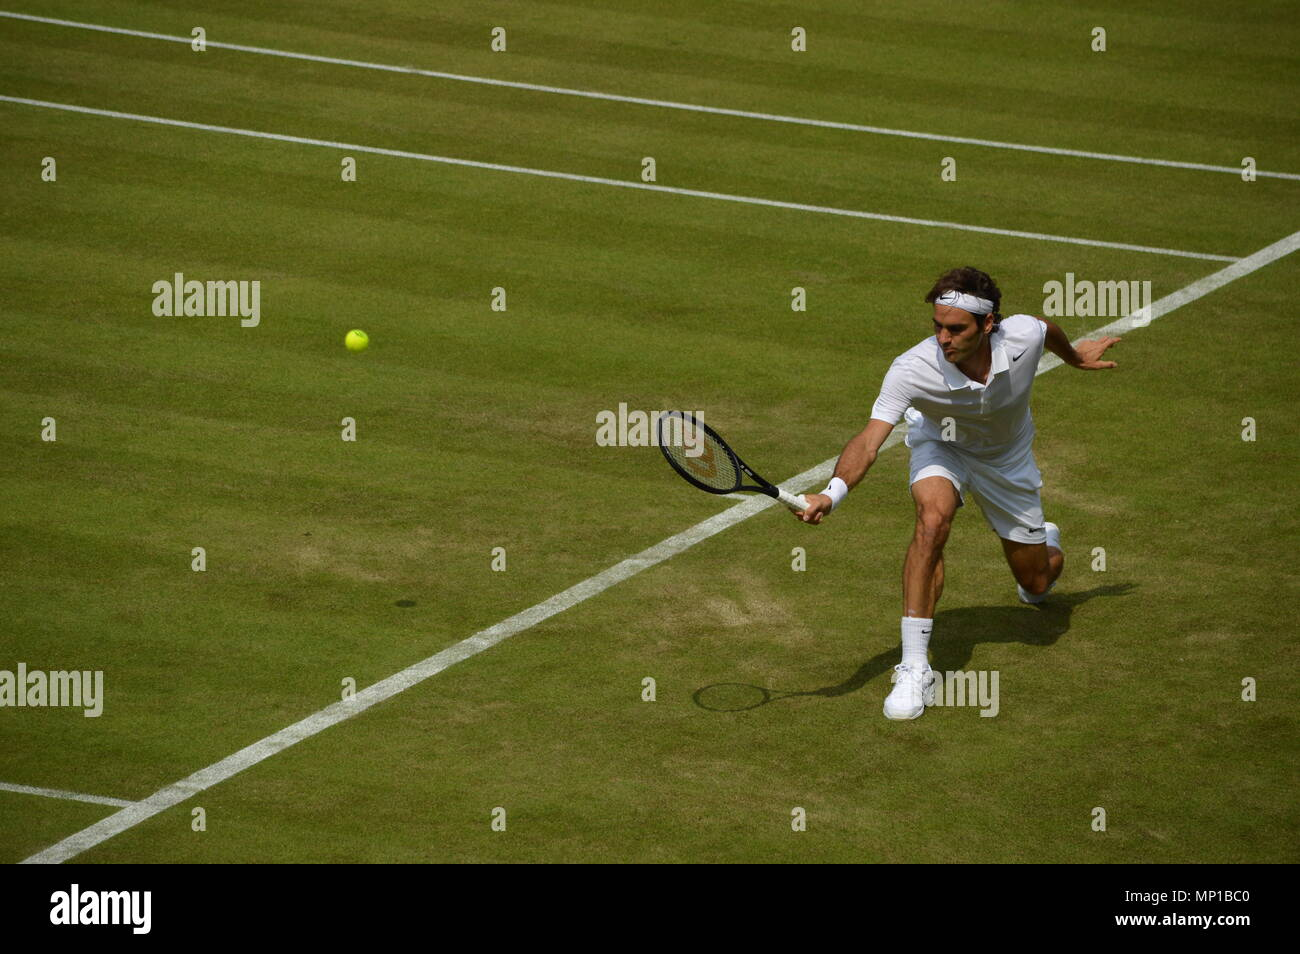 Roger Federer returning a shot with a backhand at Wimbledon - Stock Image